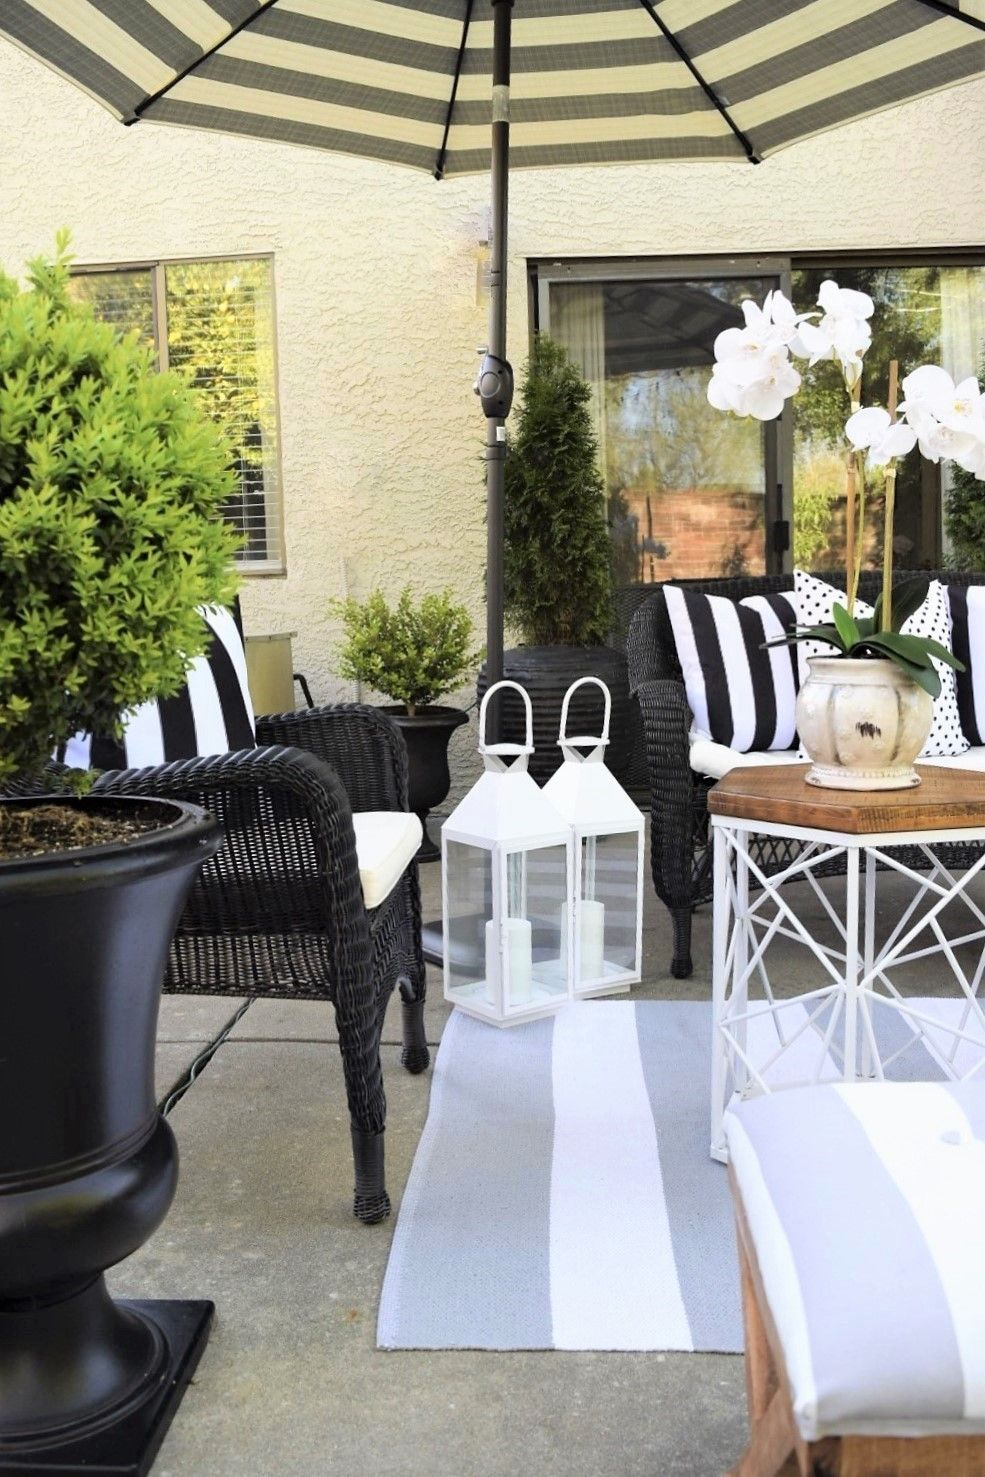 Patio 101: Bring Life to Your Outdoor Space | Patio ... on Living Spaces Outdoor Sectional id=71995